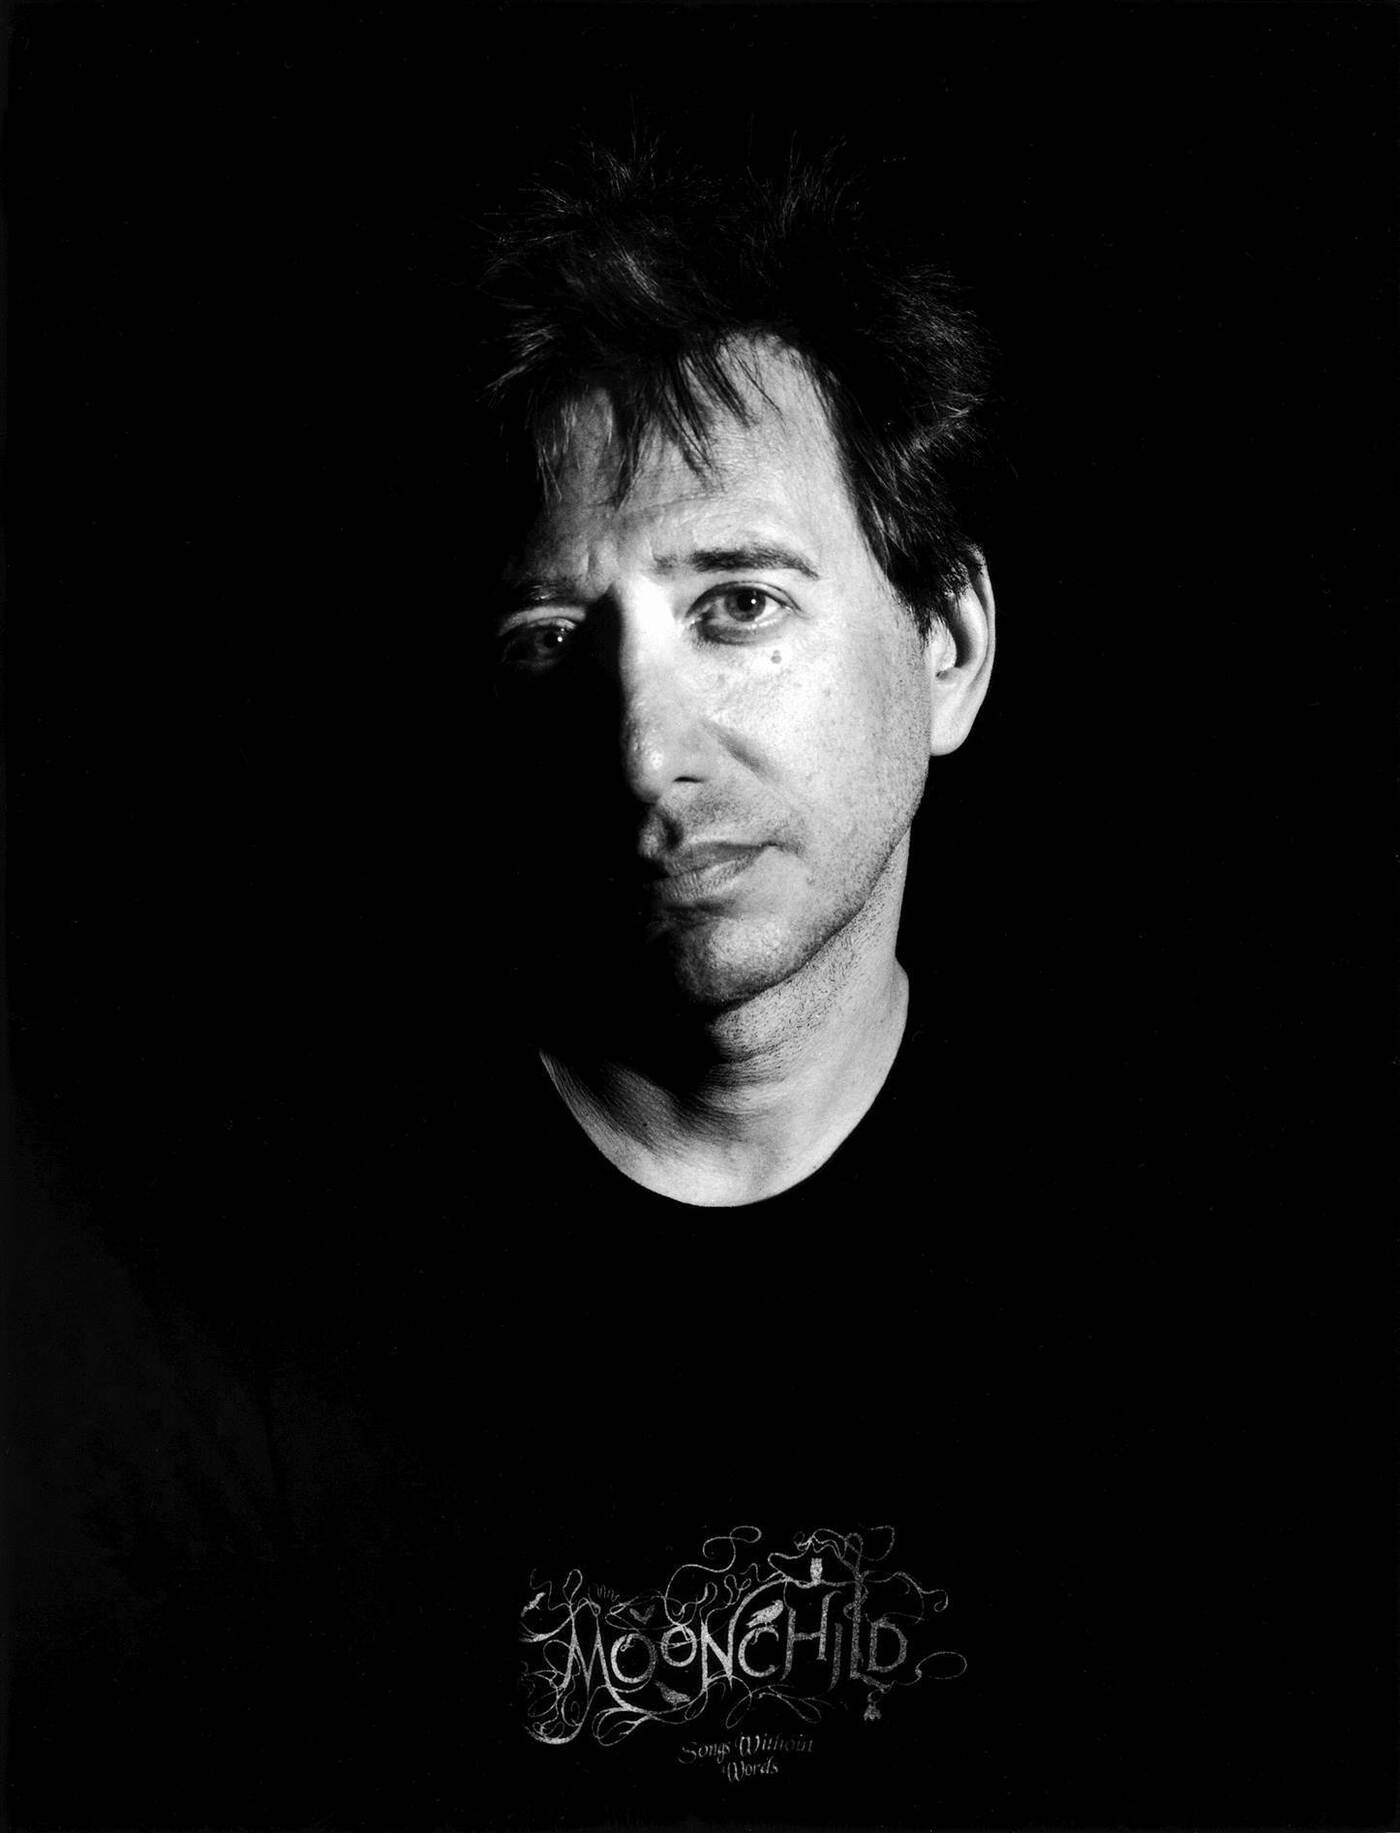 John Zorn Dreamachines